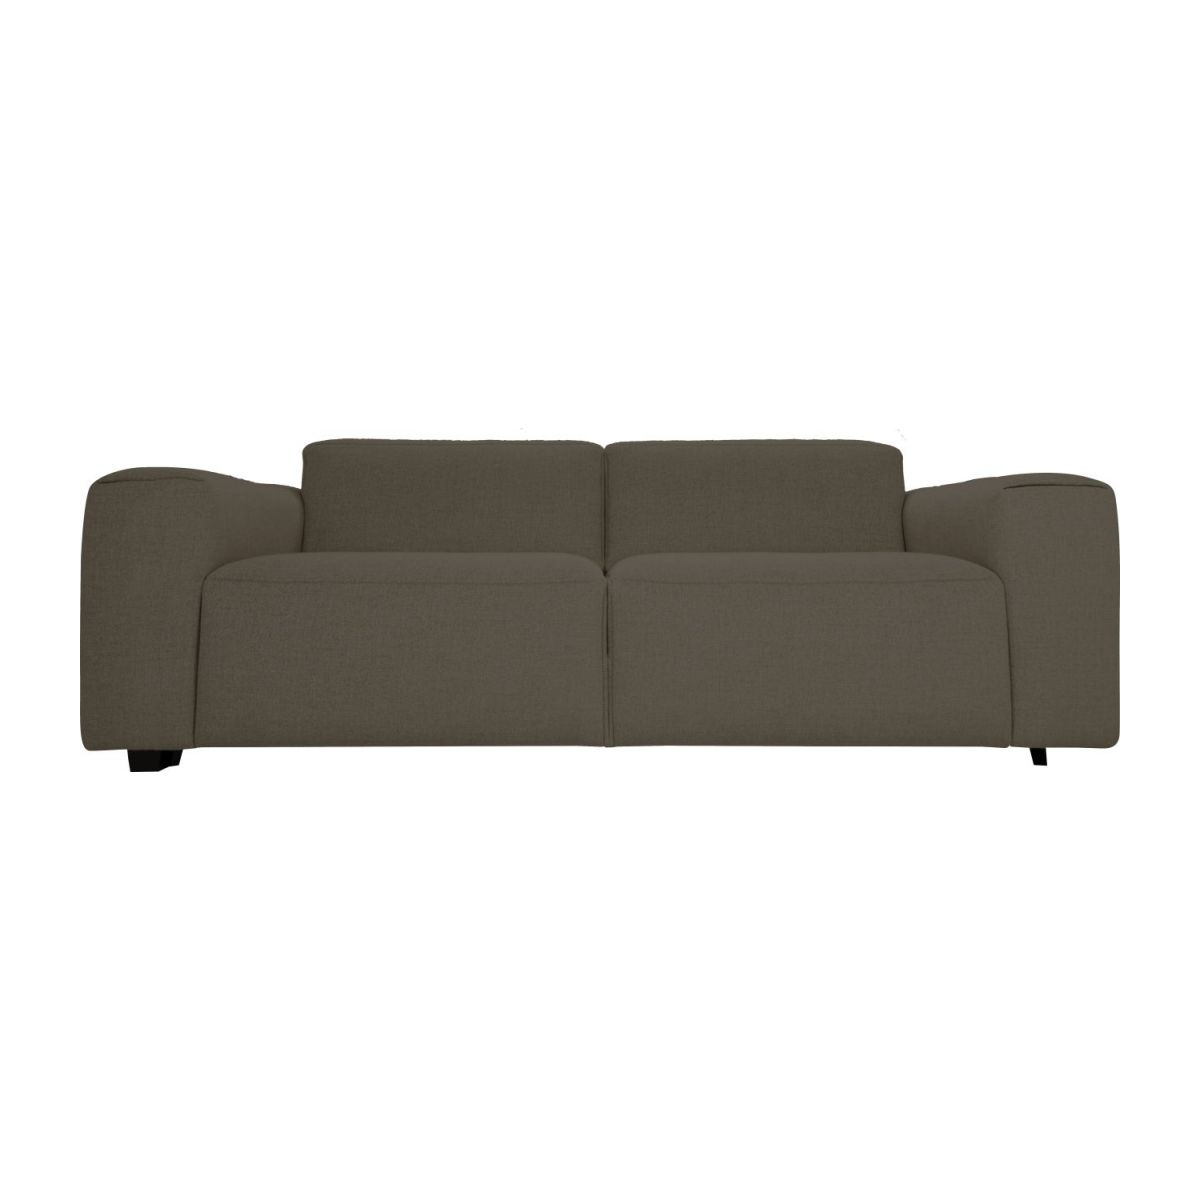 2 seater sofa in Lecce fabric, muscat n°2